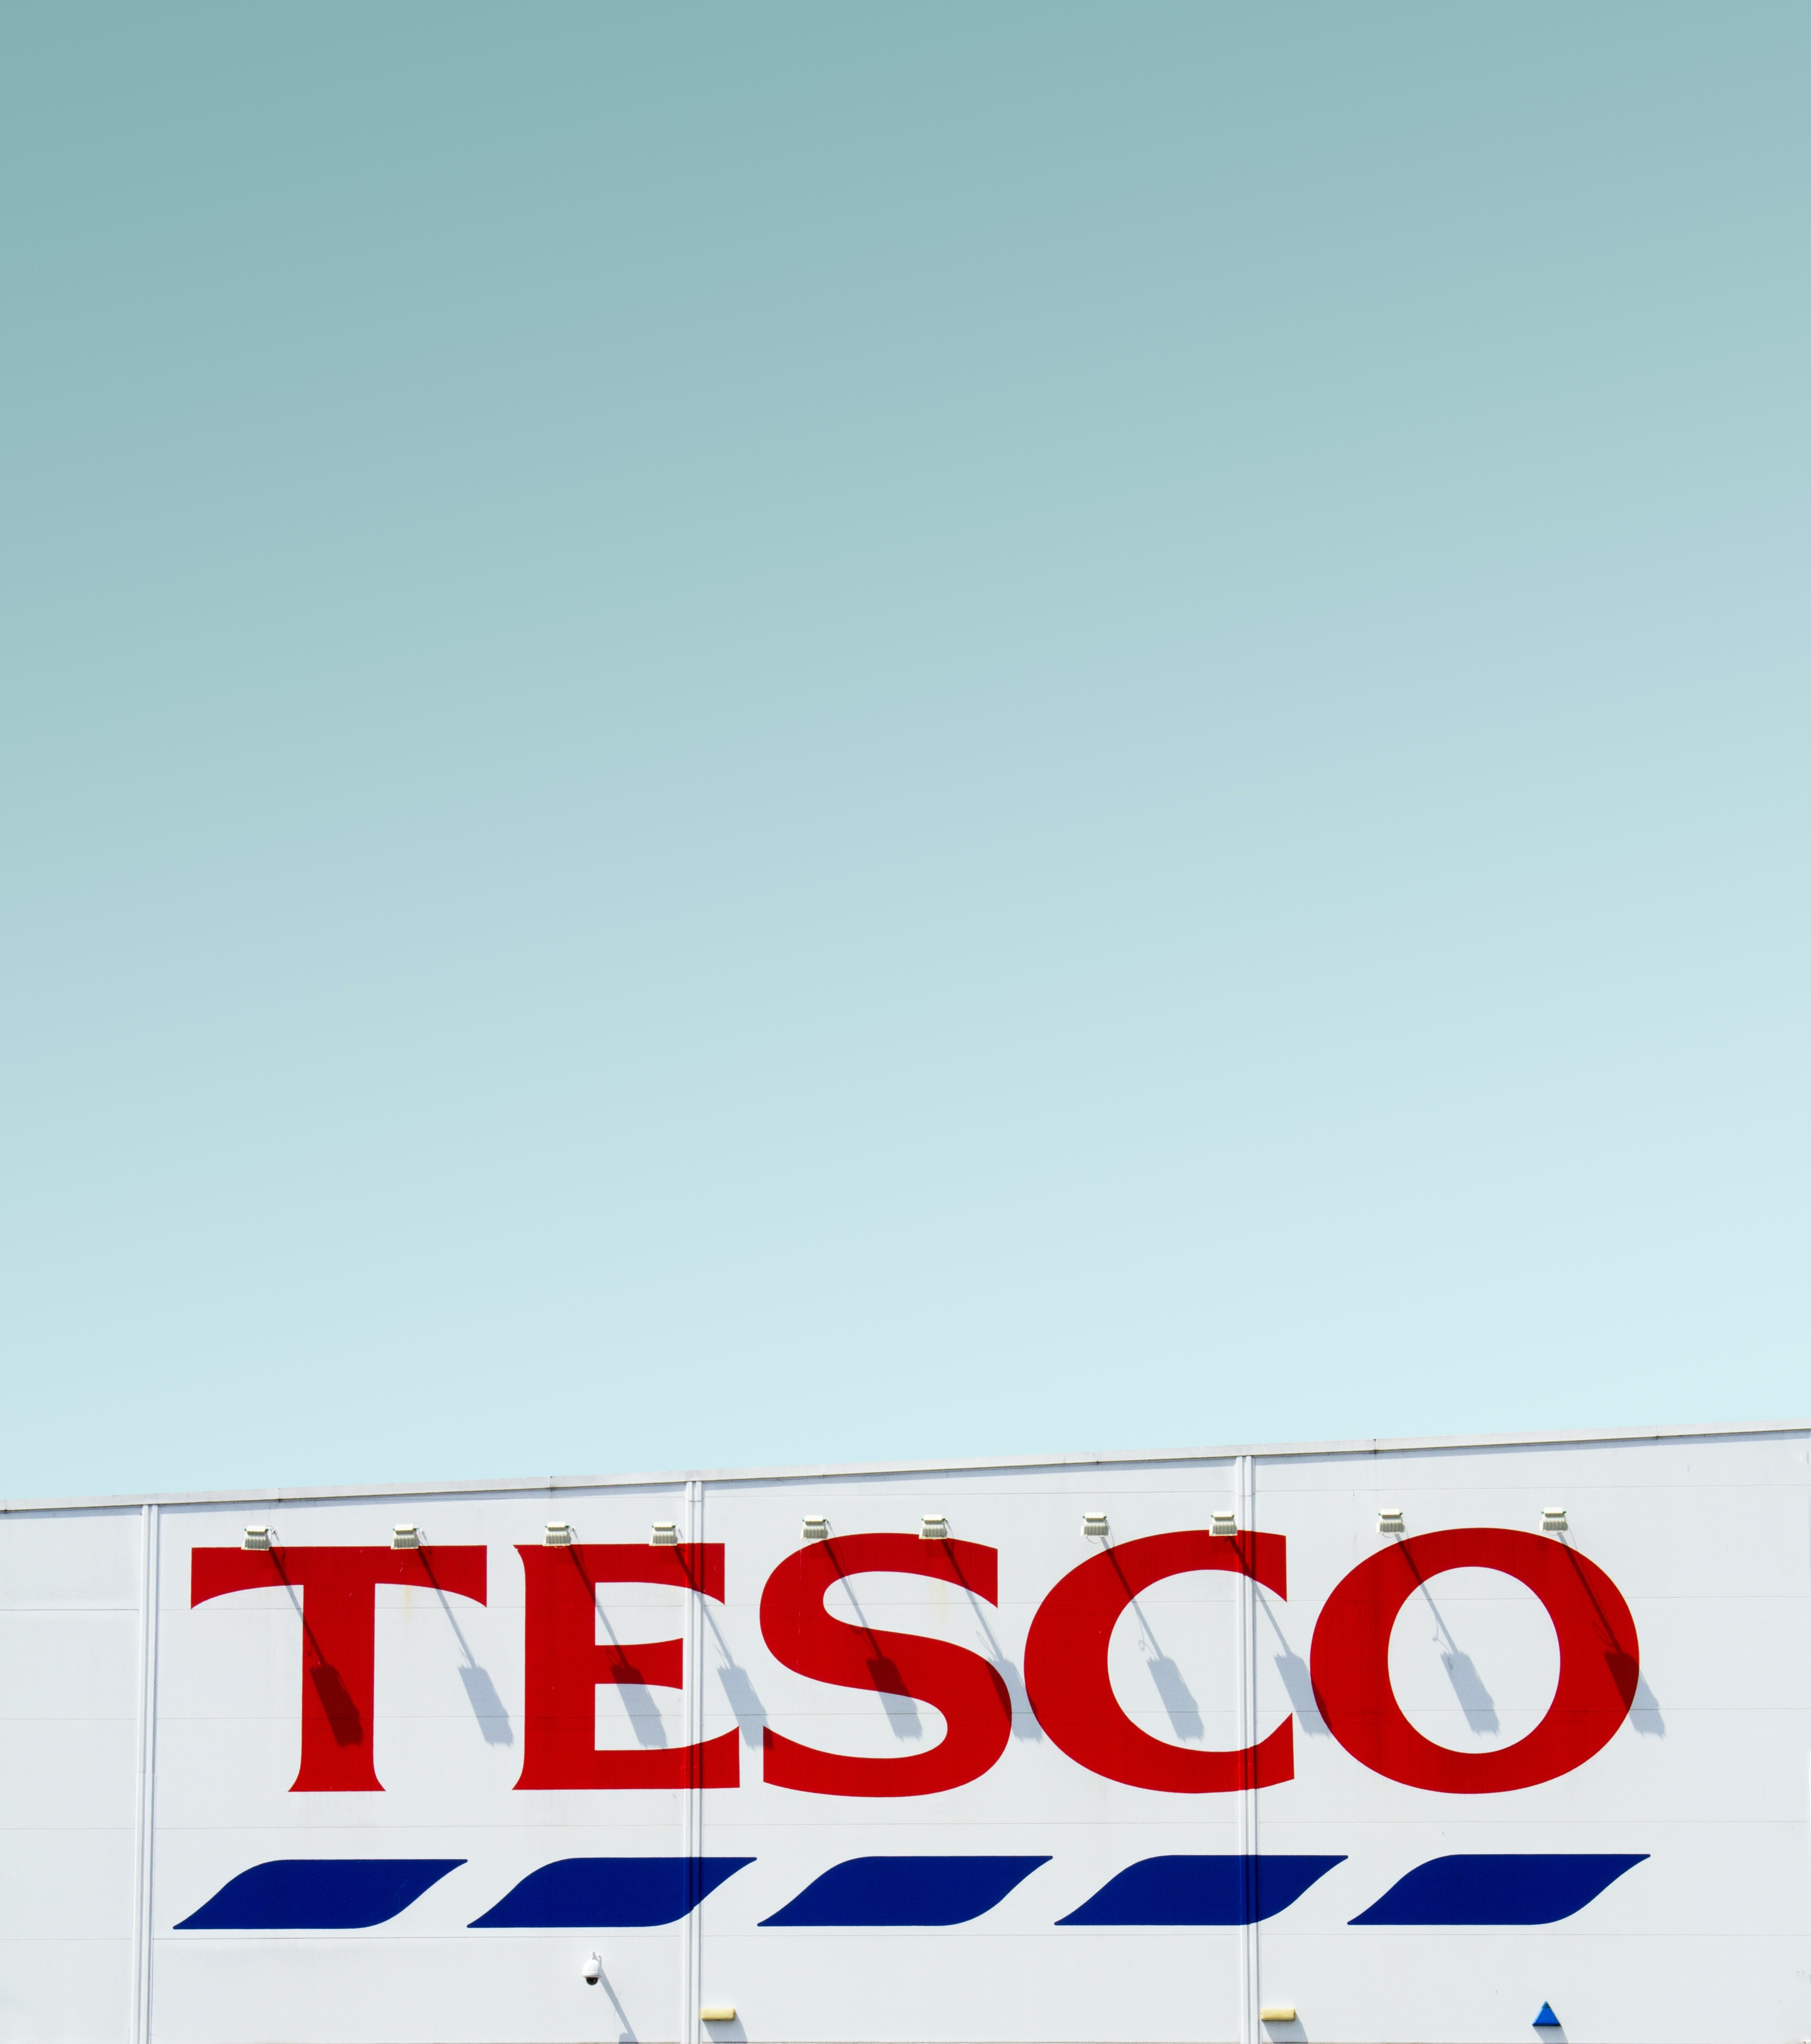 Tesco building under clear blue sky